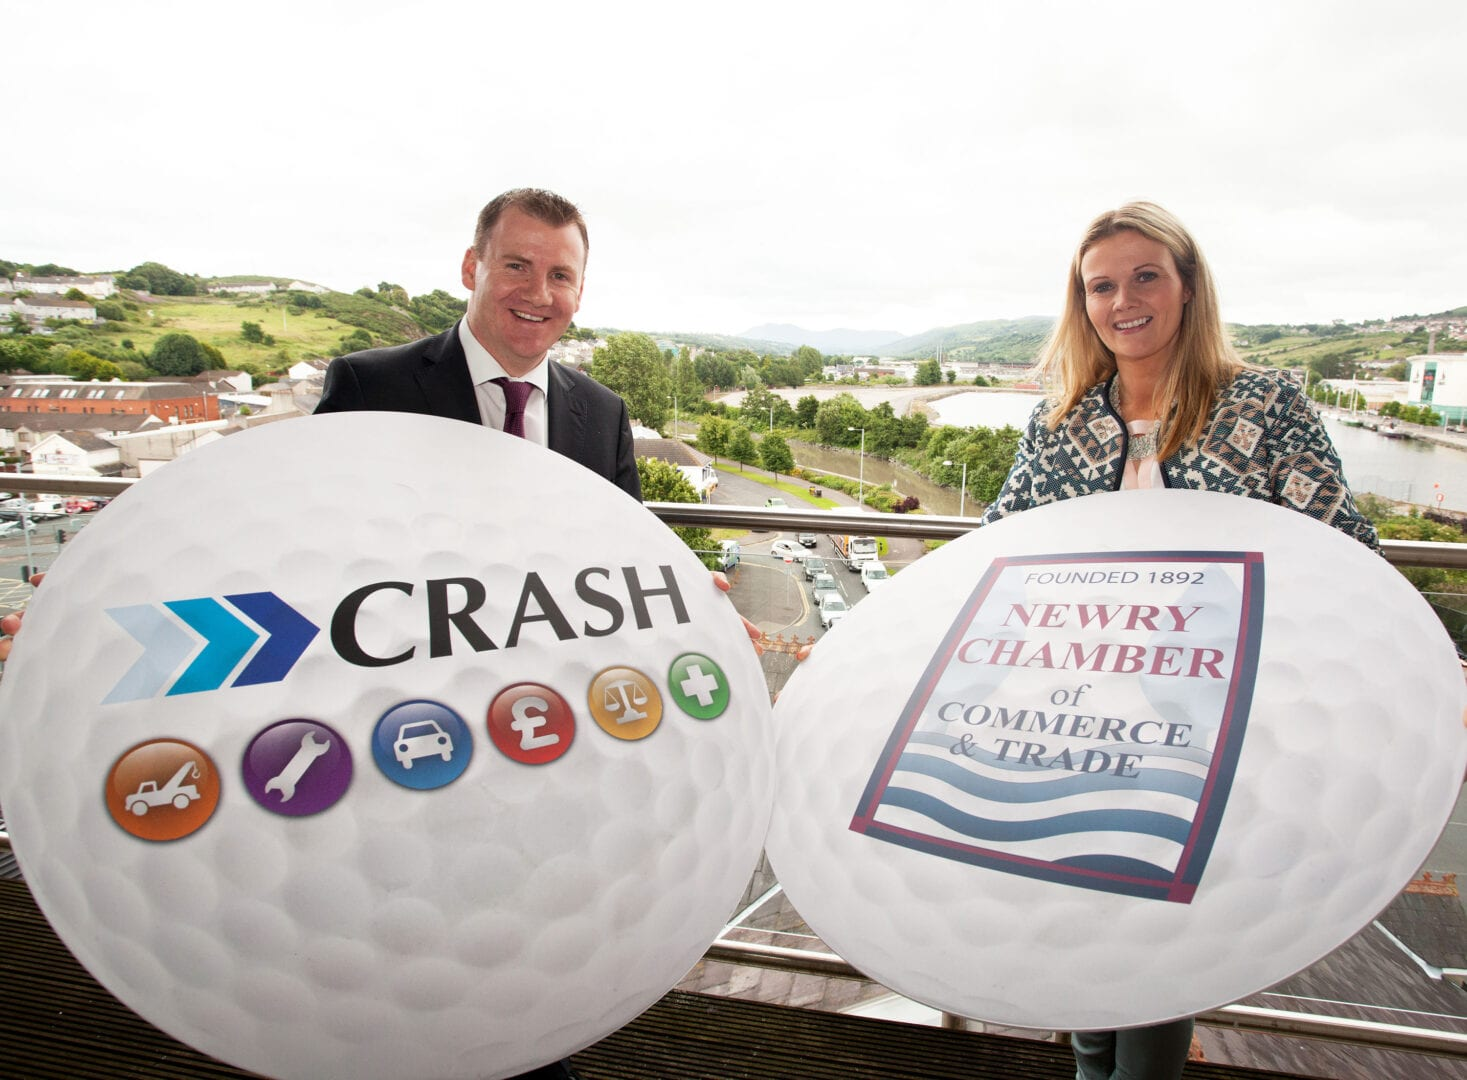 CRASH Services to sponsor Newry Chamber of Commerce & Trade Golf Classic